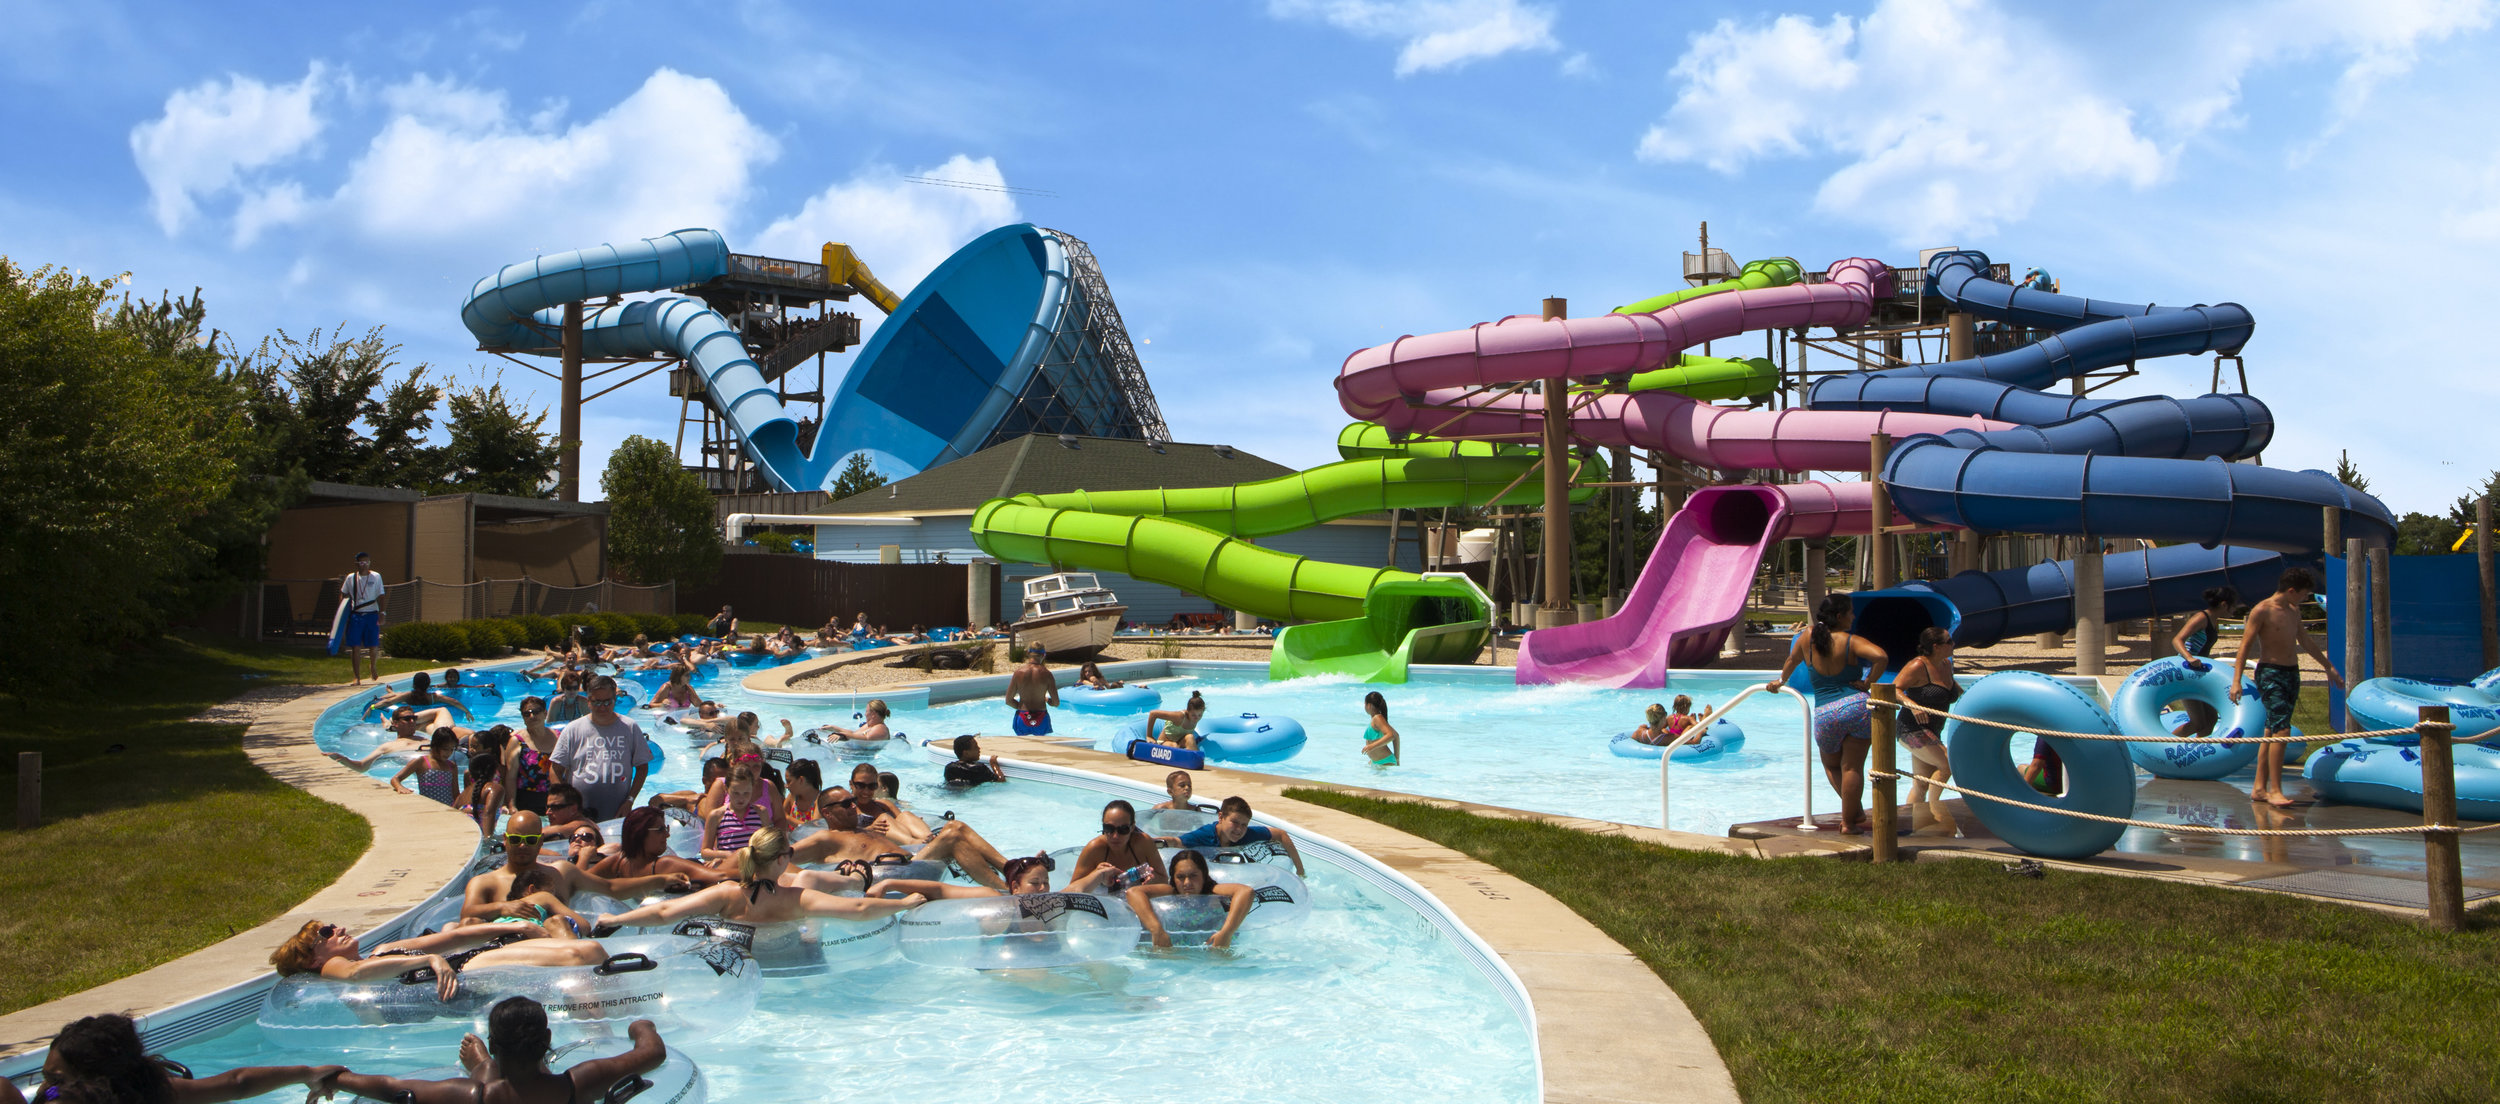 The Top 8 Tips for Raging Waves WaterPark Tiaras & Tantrums